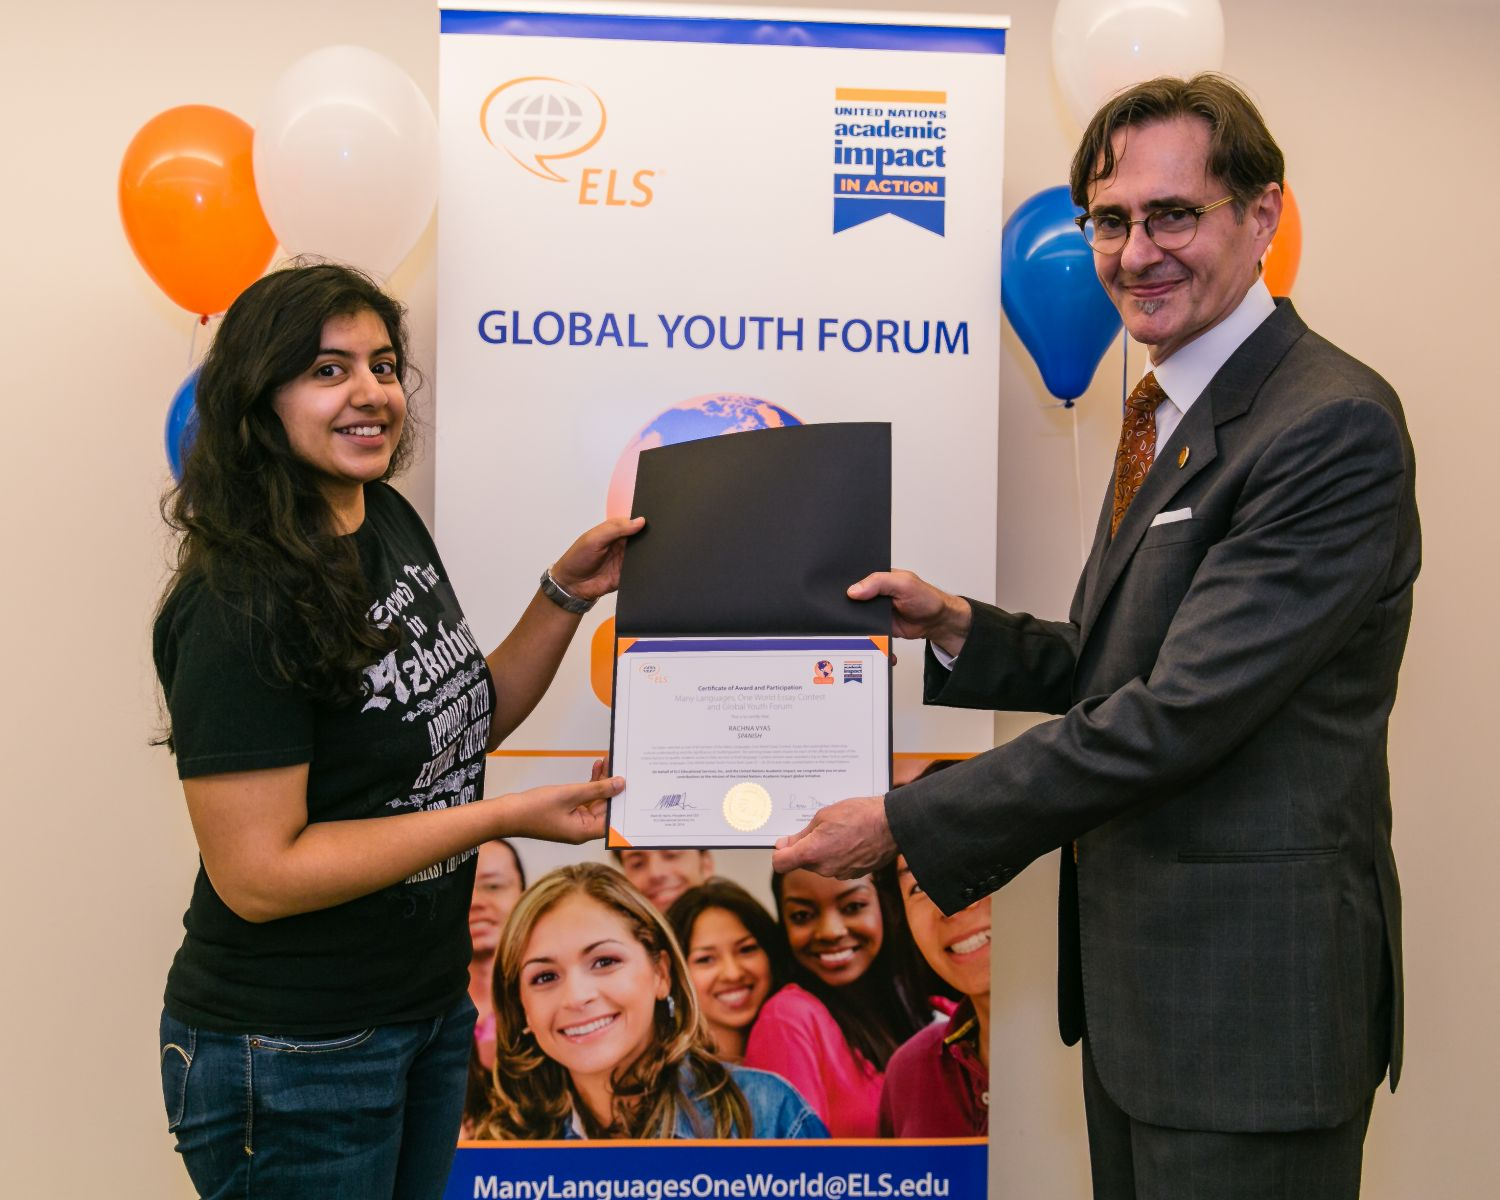 Power of youth essay contest